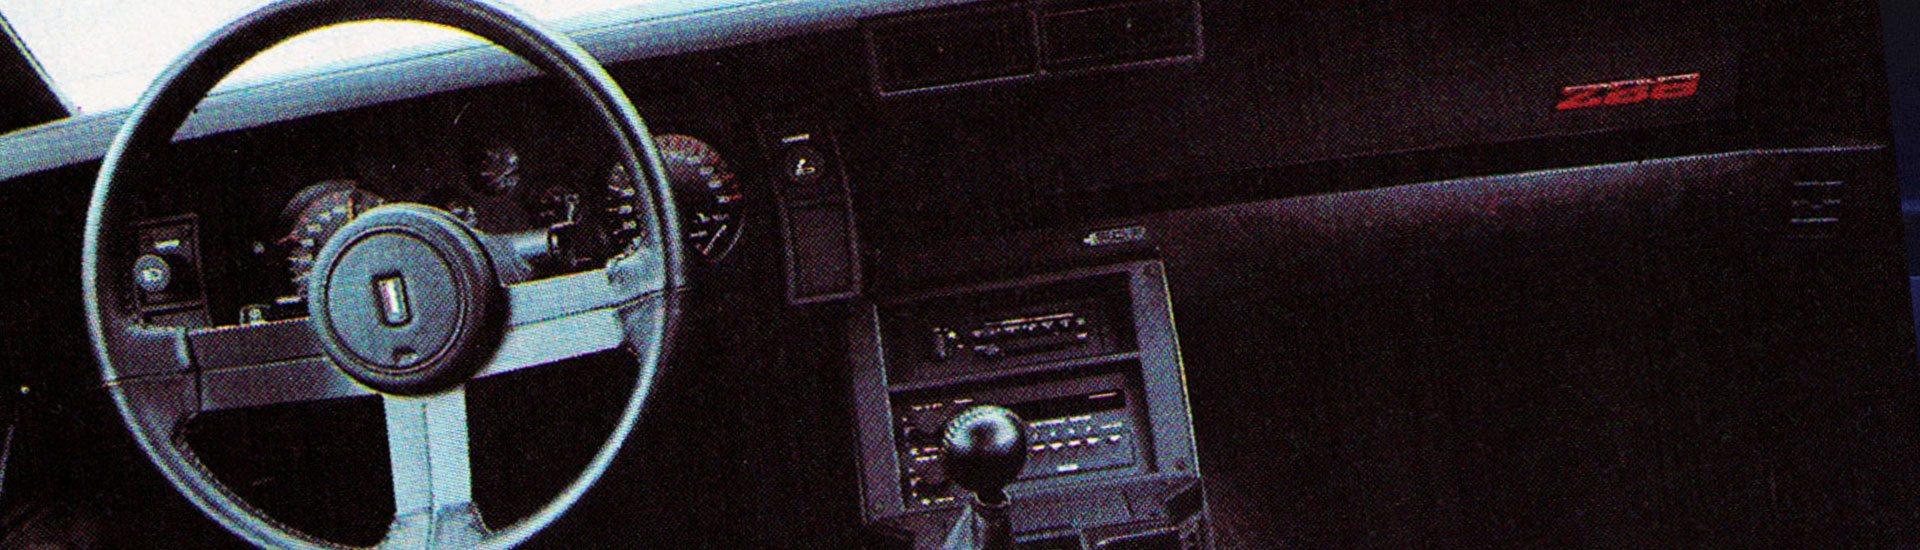 1983 Chevrolet Camaro Dash Kits